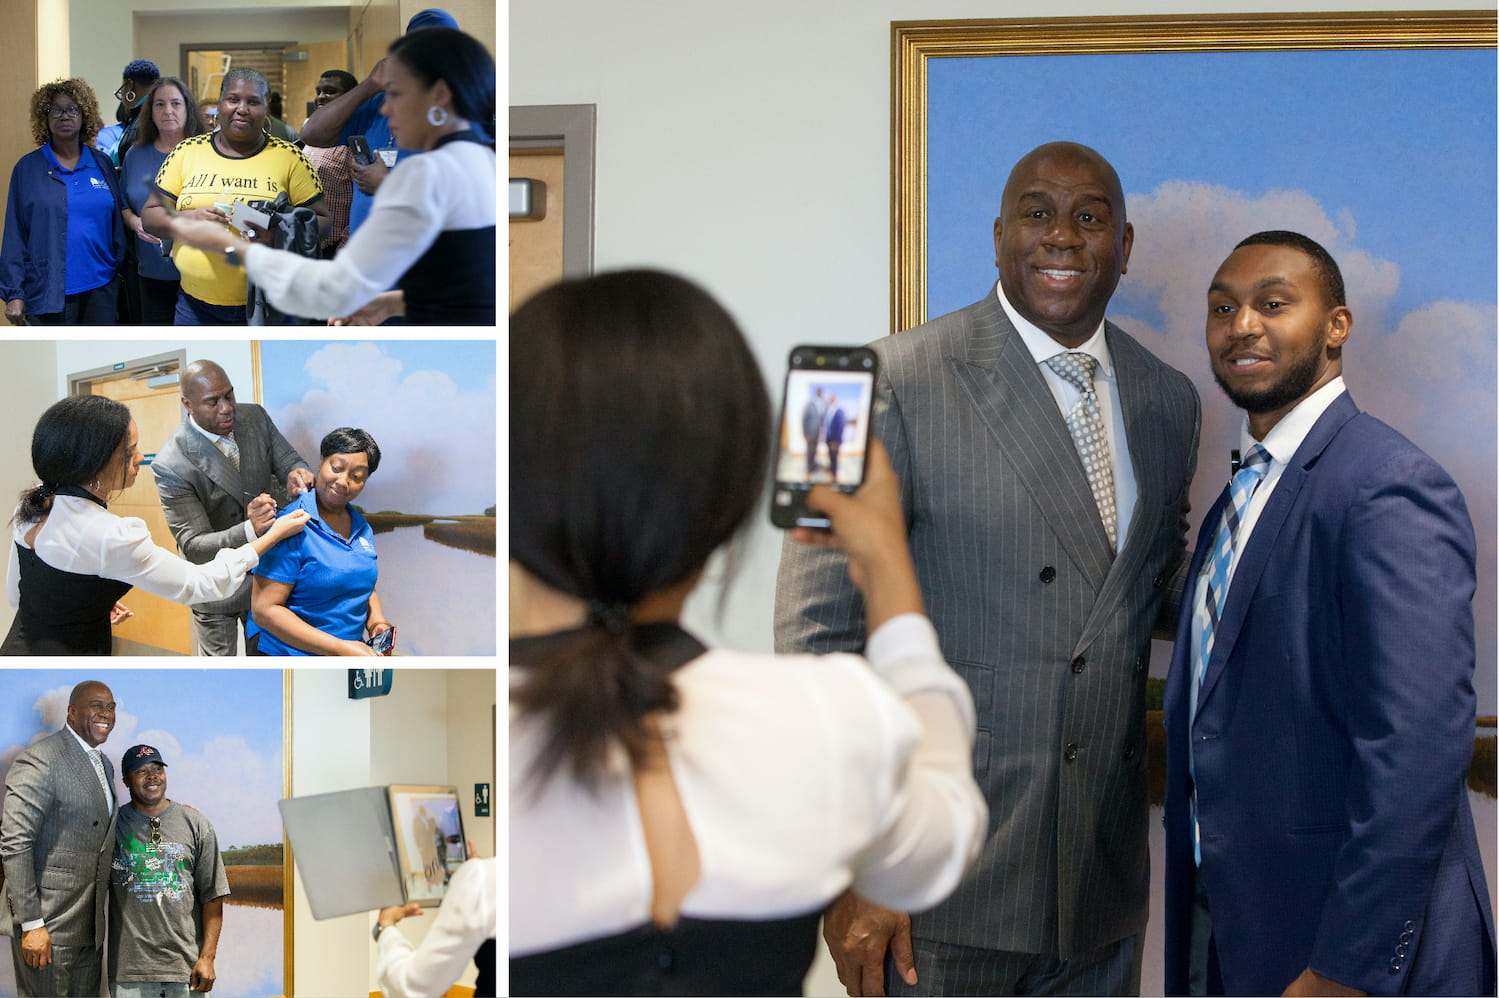 Magic Johnson poses for photos and signs autographs for SodexoMAGIC employees at MUSC